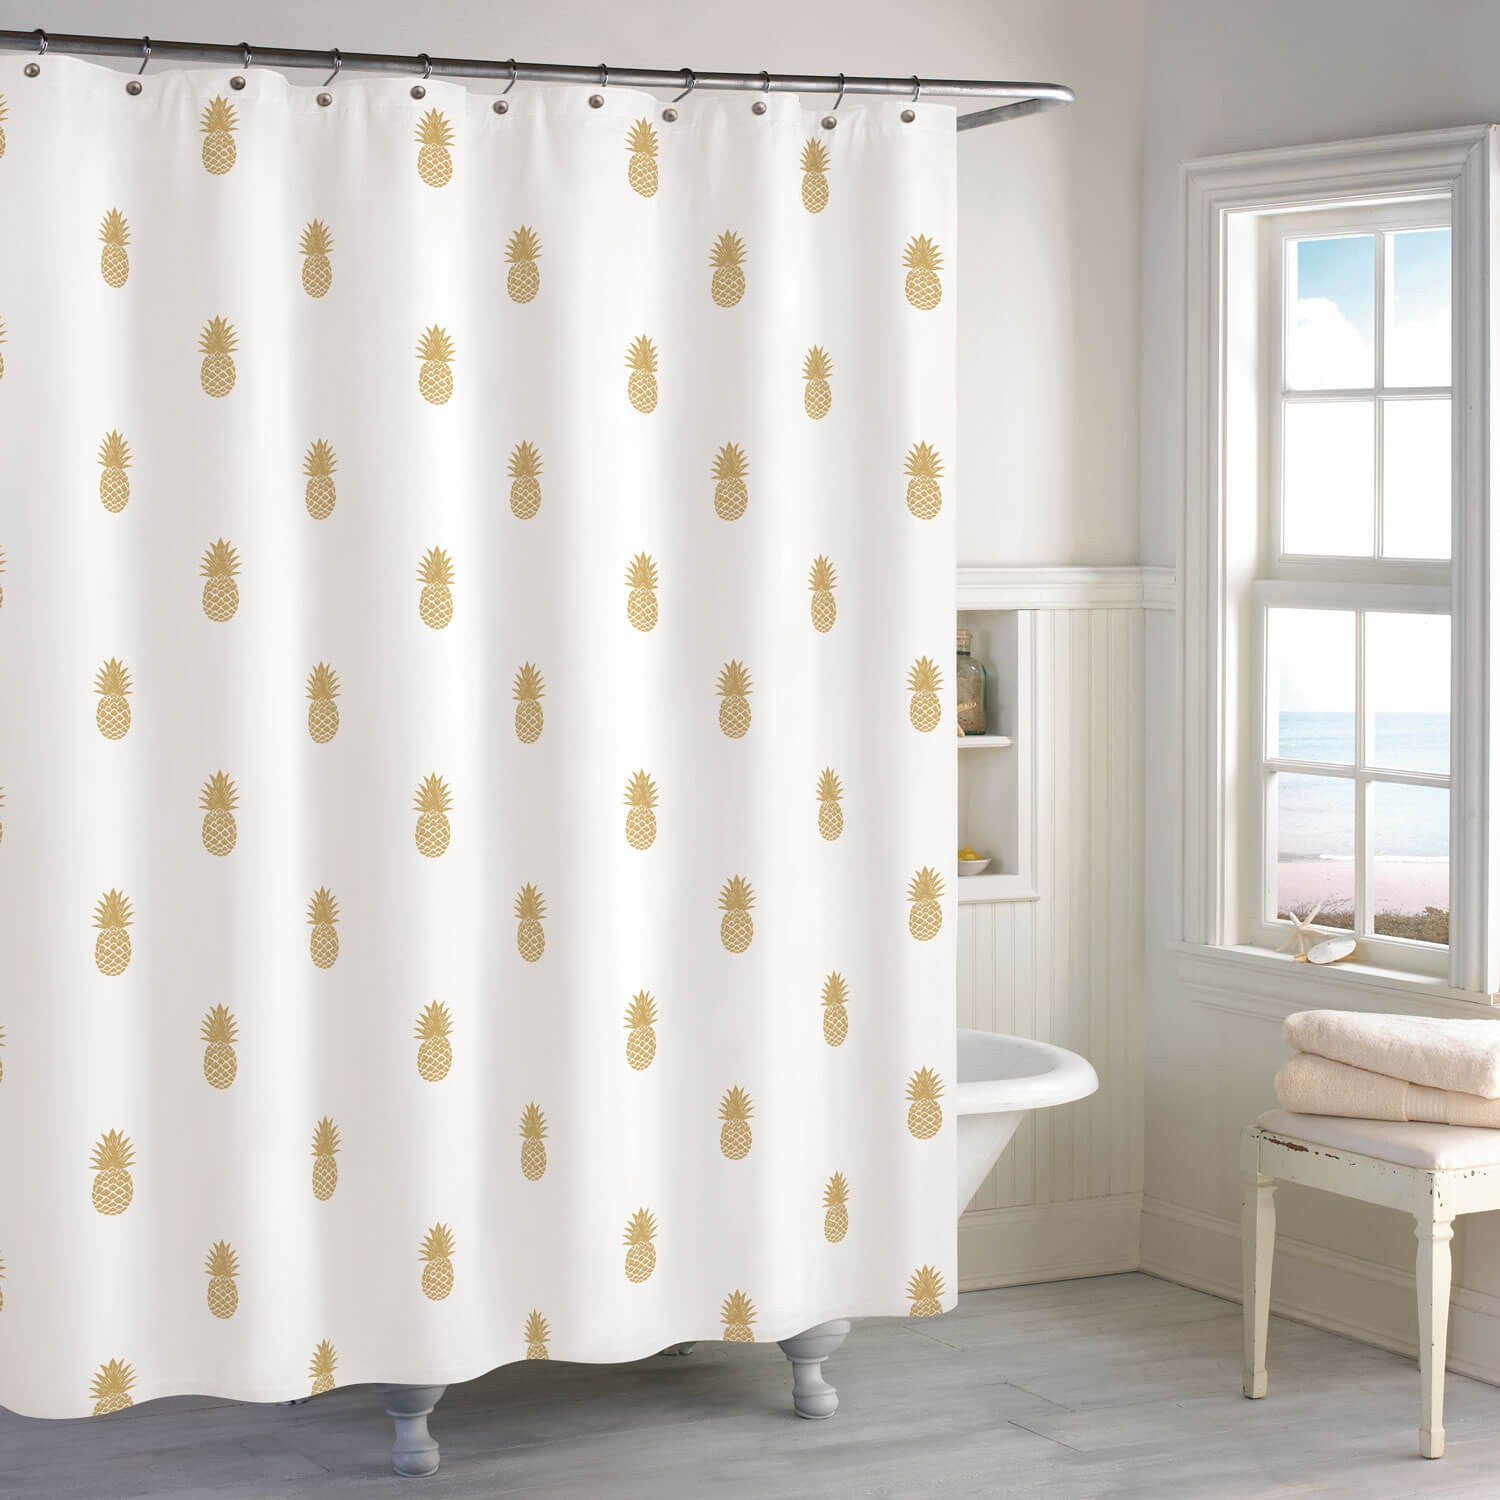 Golden Pineapple Shower Curtain